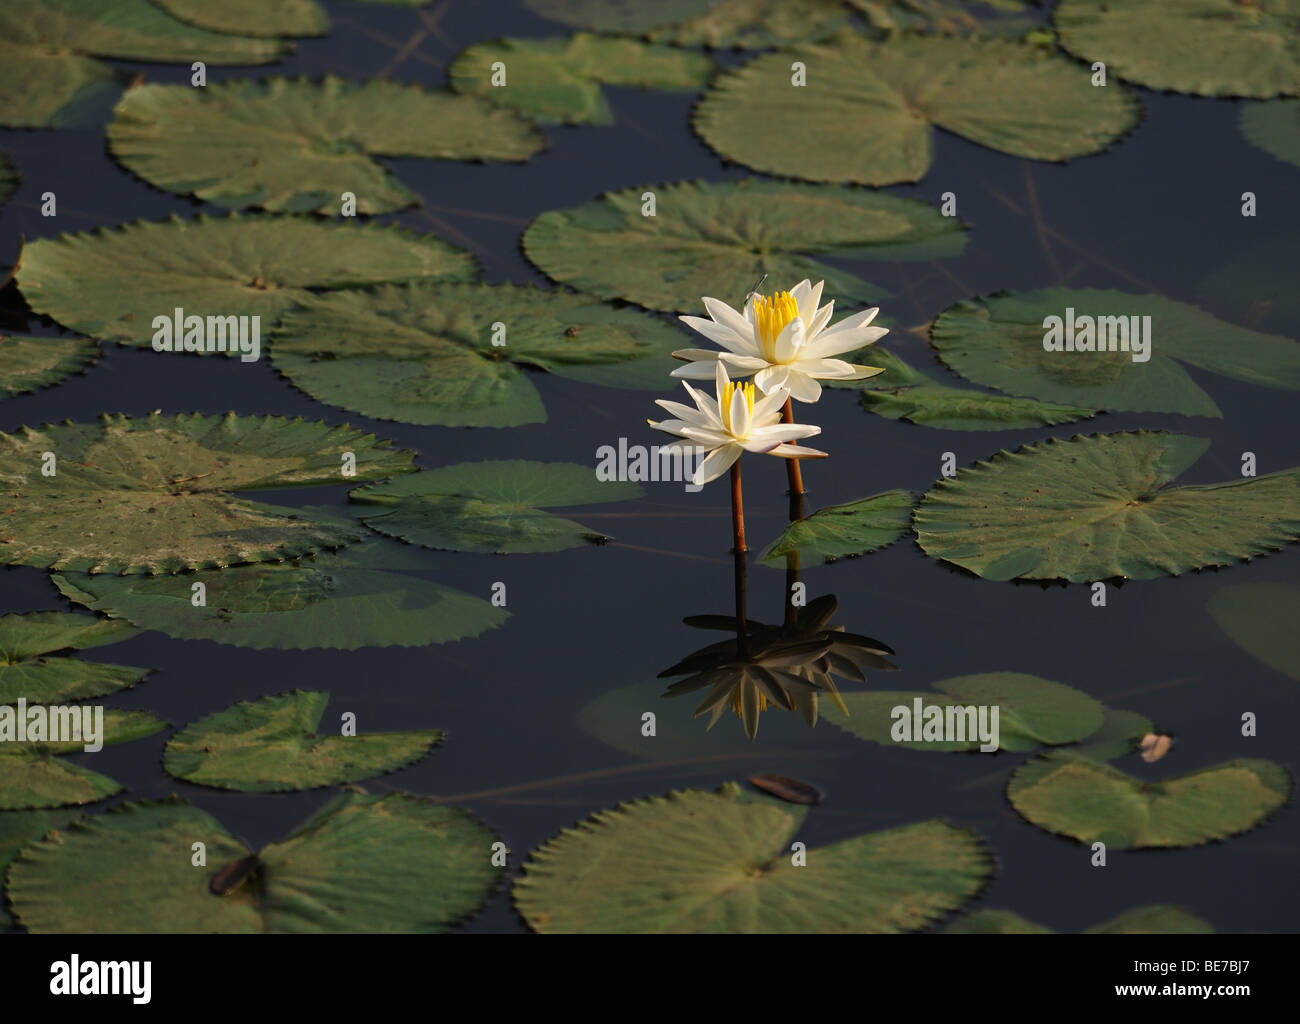 White Lilies in a pond surrounded by its leaves Stock Photo